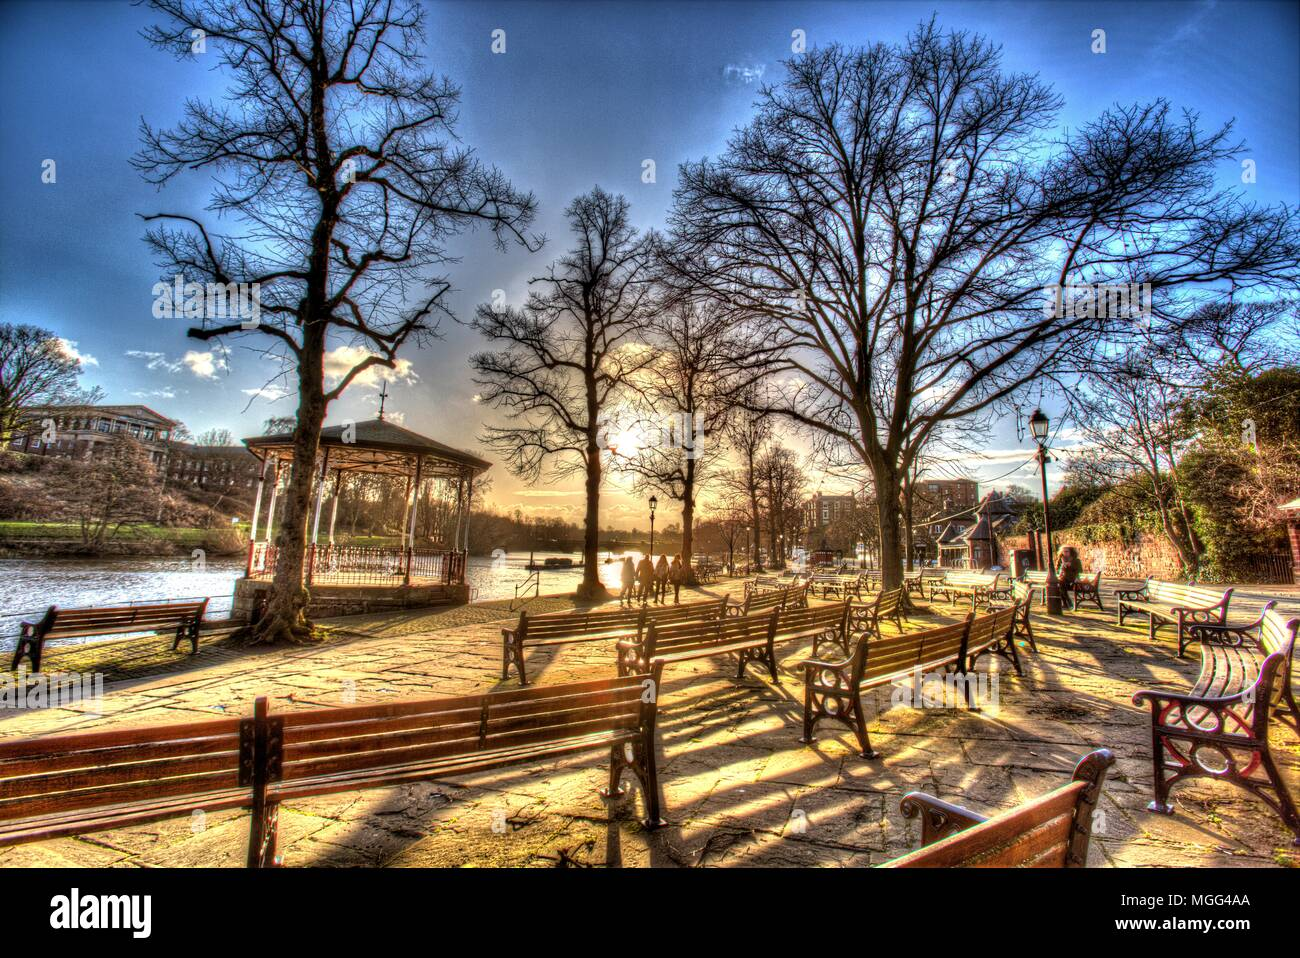 City of Chester, England. Artistic silhouetted view of the empty benches and the Victorian bandstand on the Groves, by the River Dee. - Stock Image